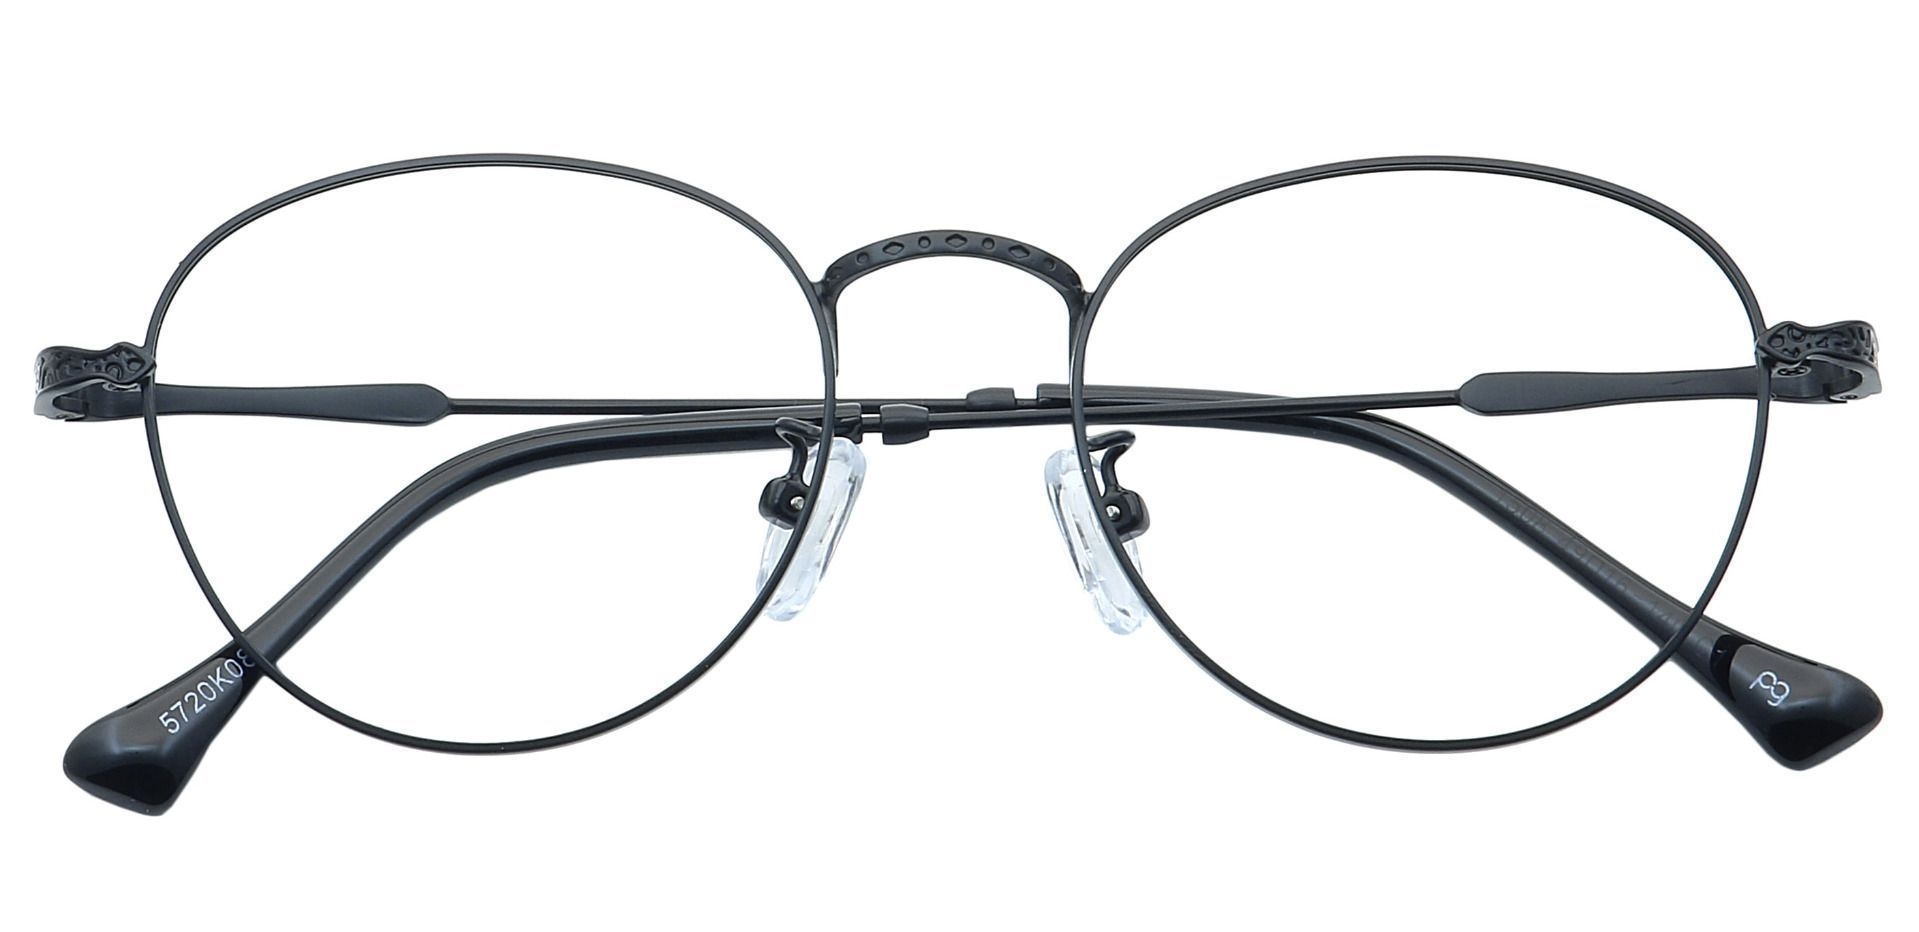 Shawn Oval Reading Glasses - Black